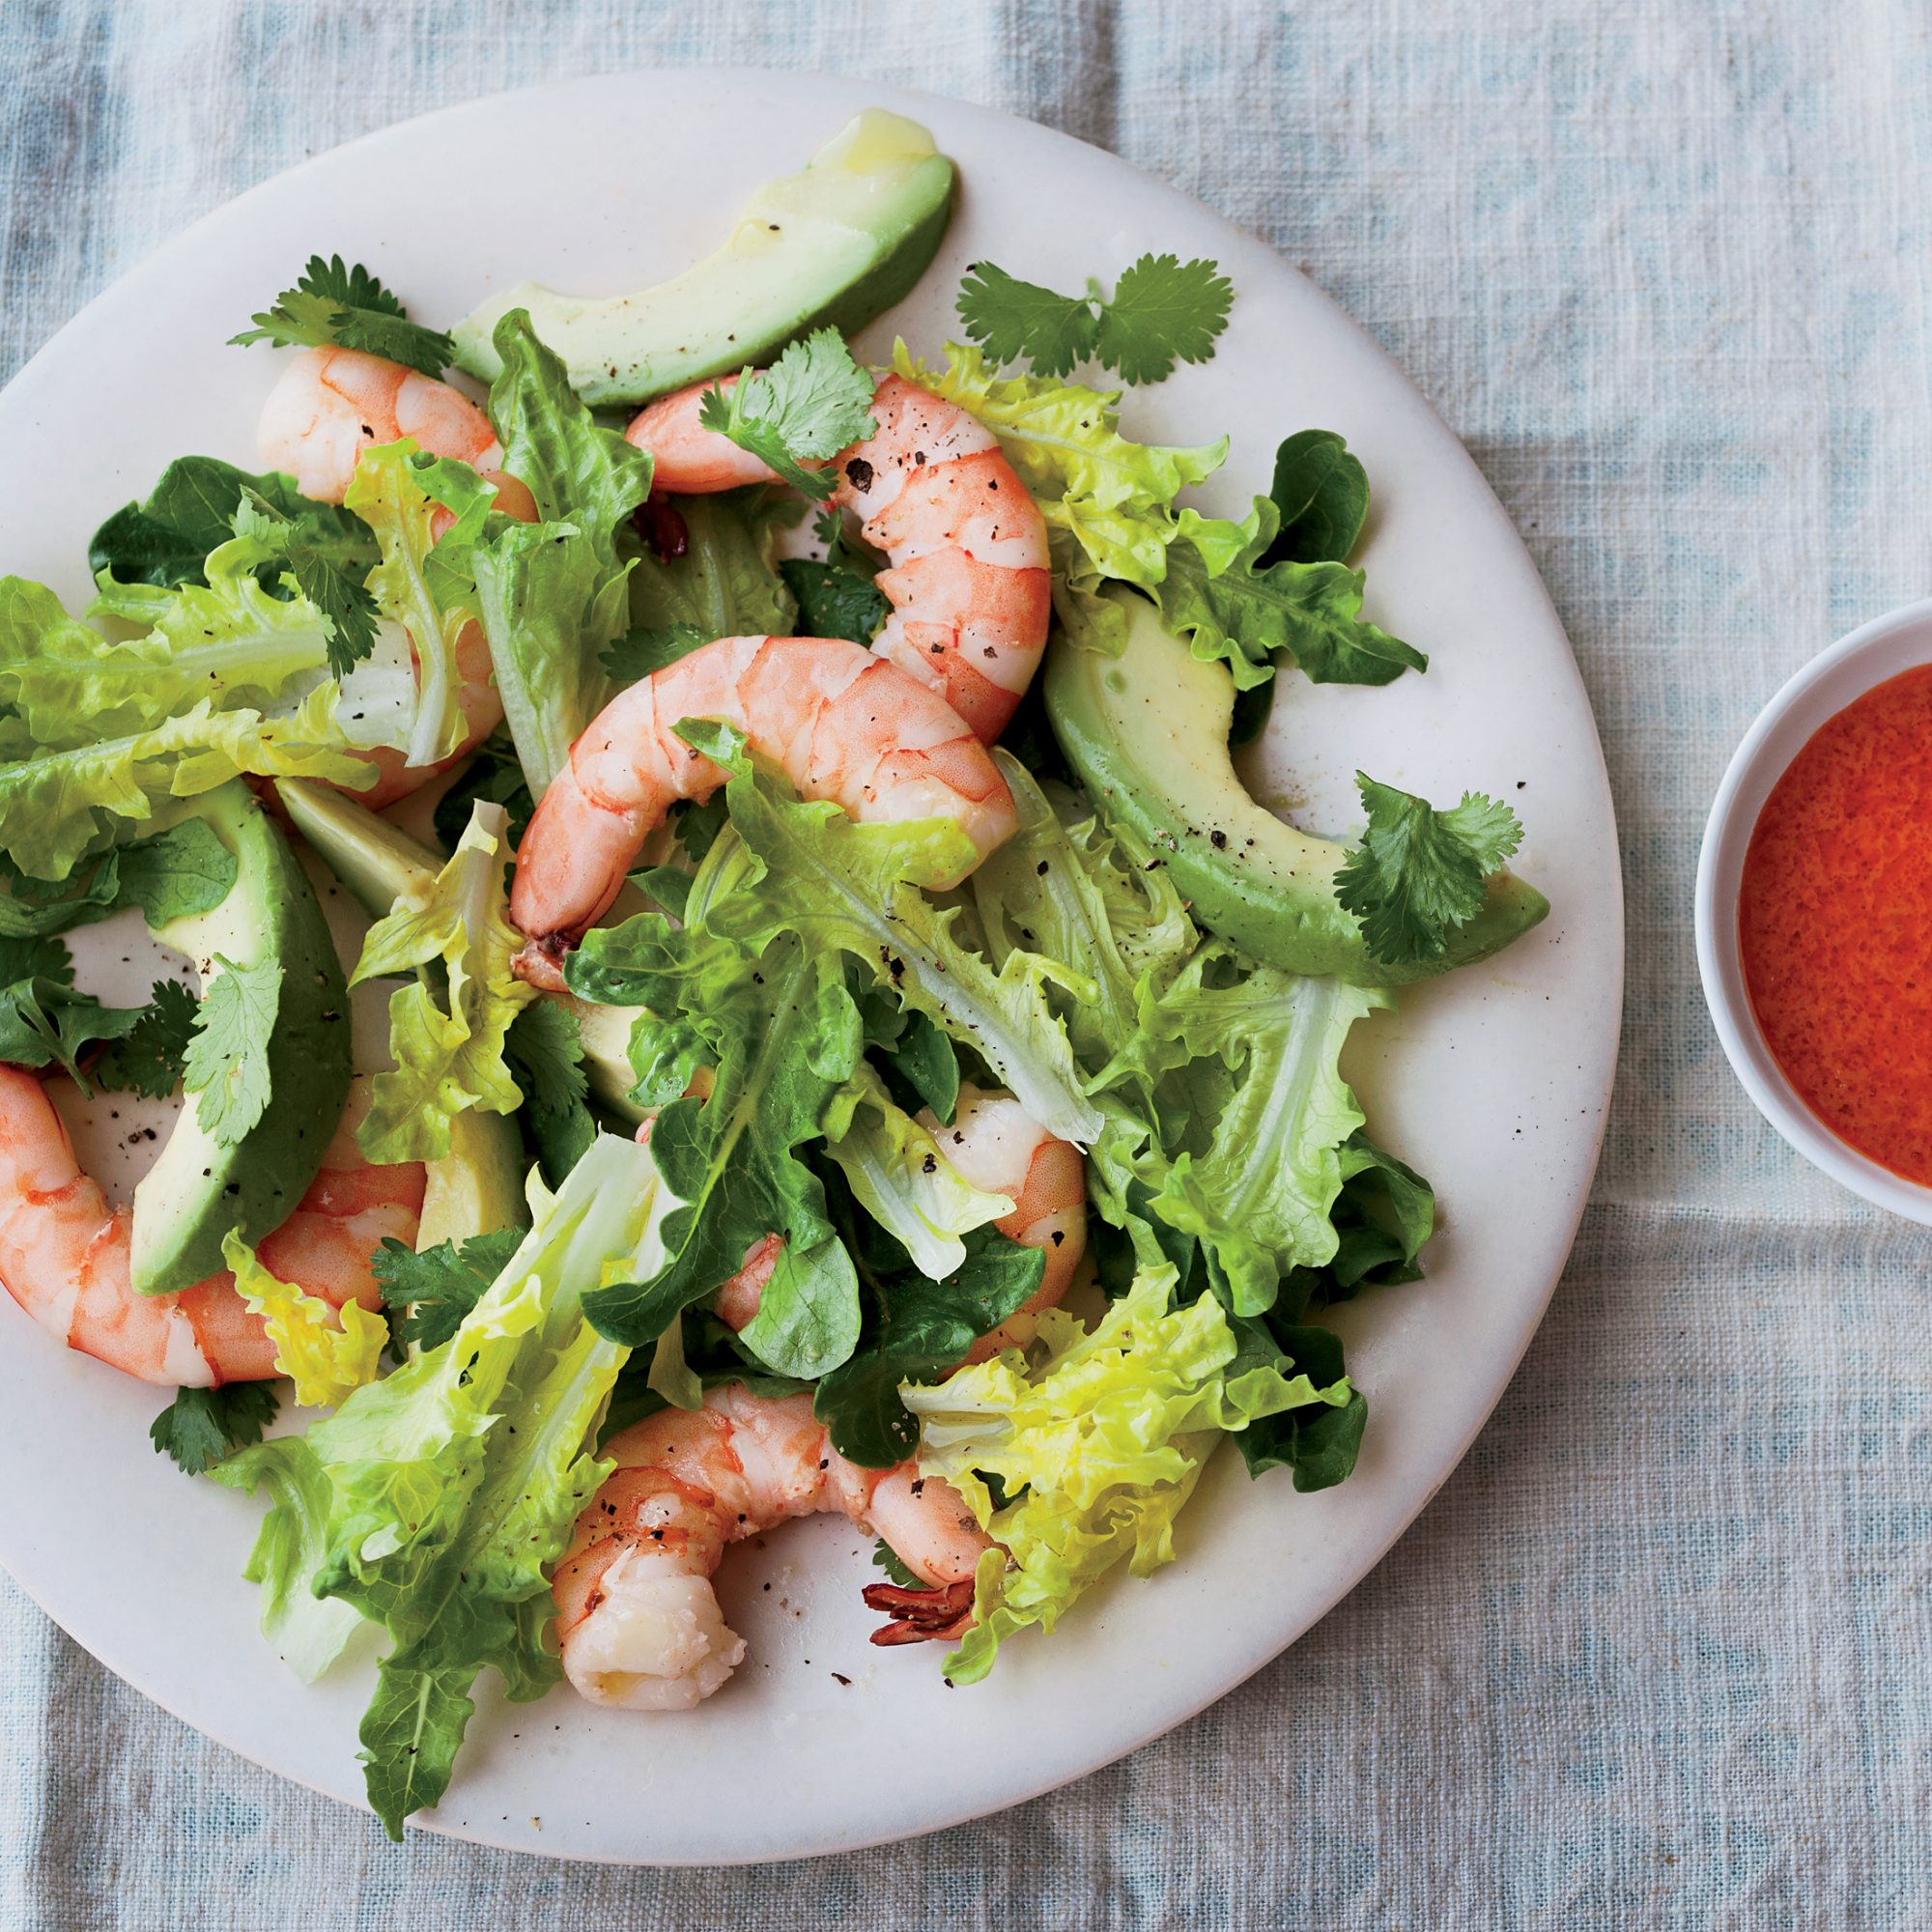 Day 2: Avocado-and-Shrimp Salad with Red Goddess Dressing